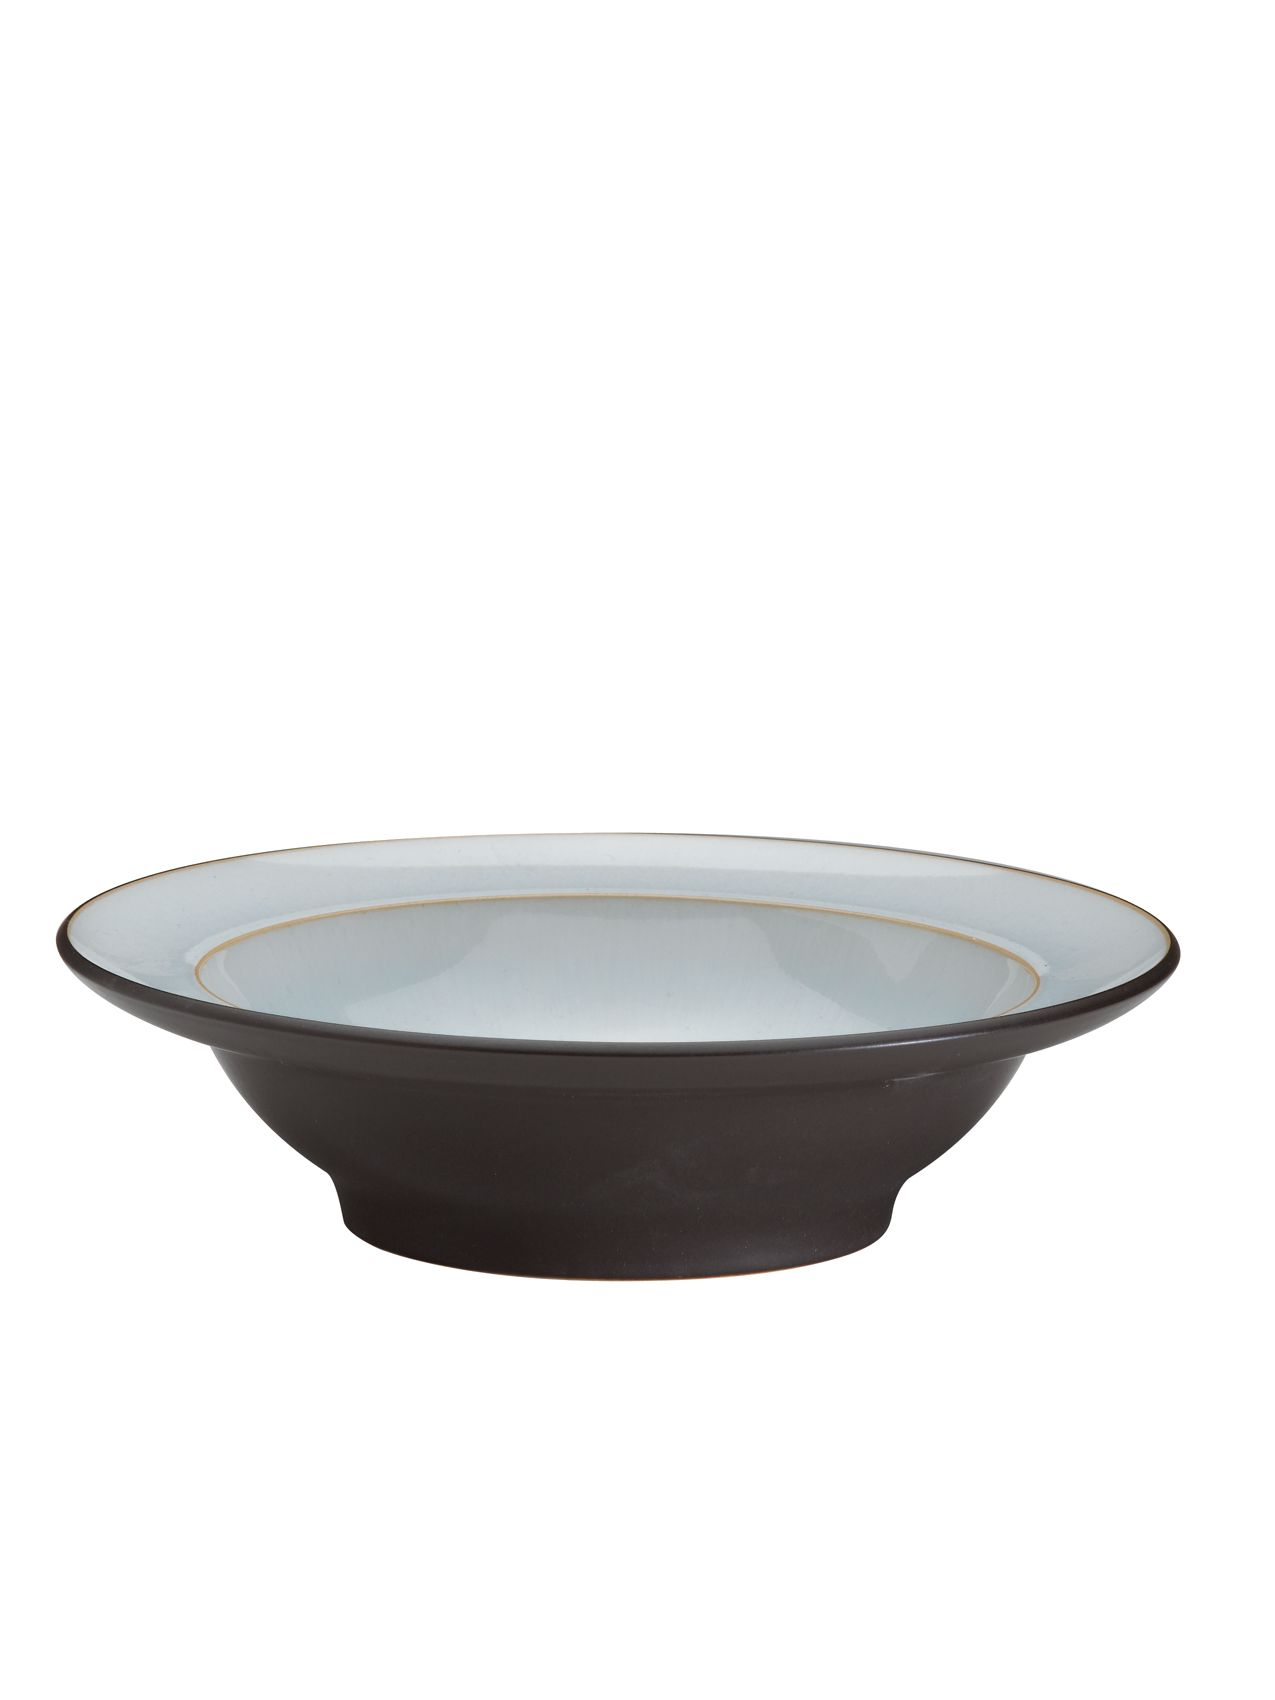 Sienna Wide Rimmed Soup/Cereal Bowl